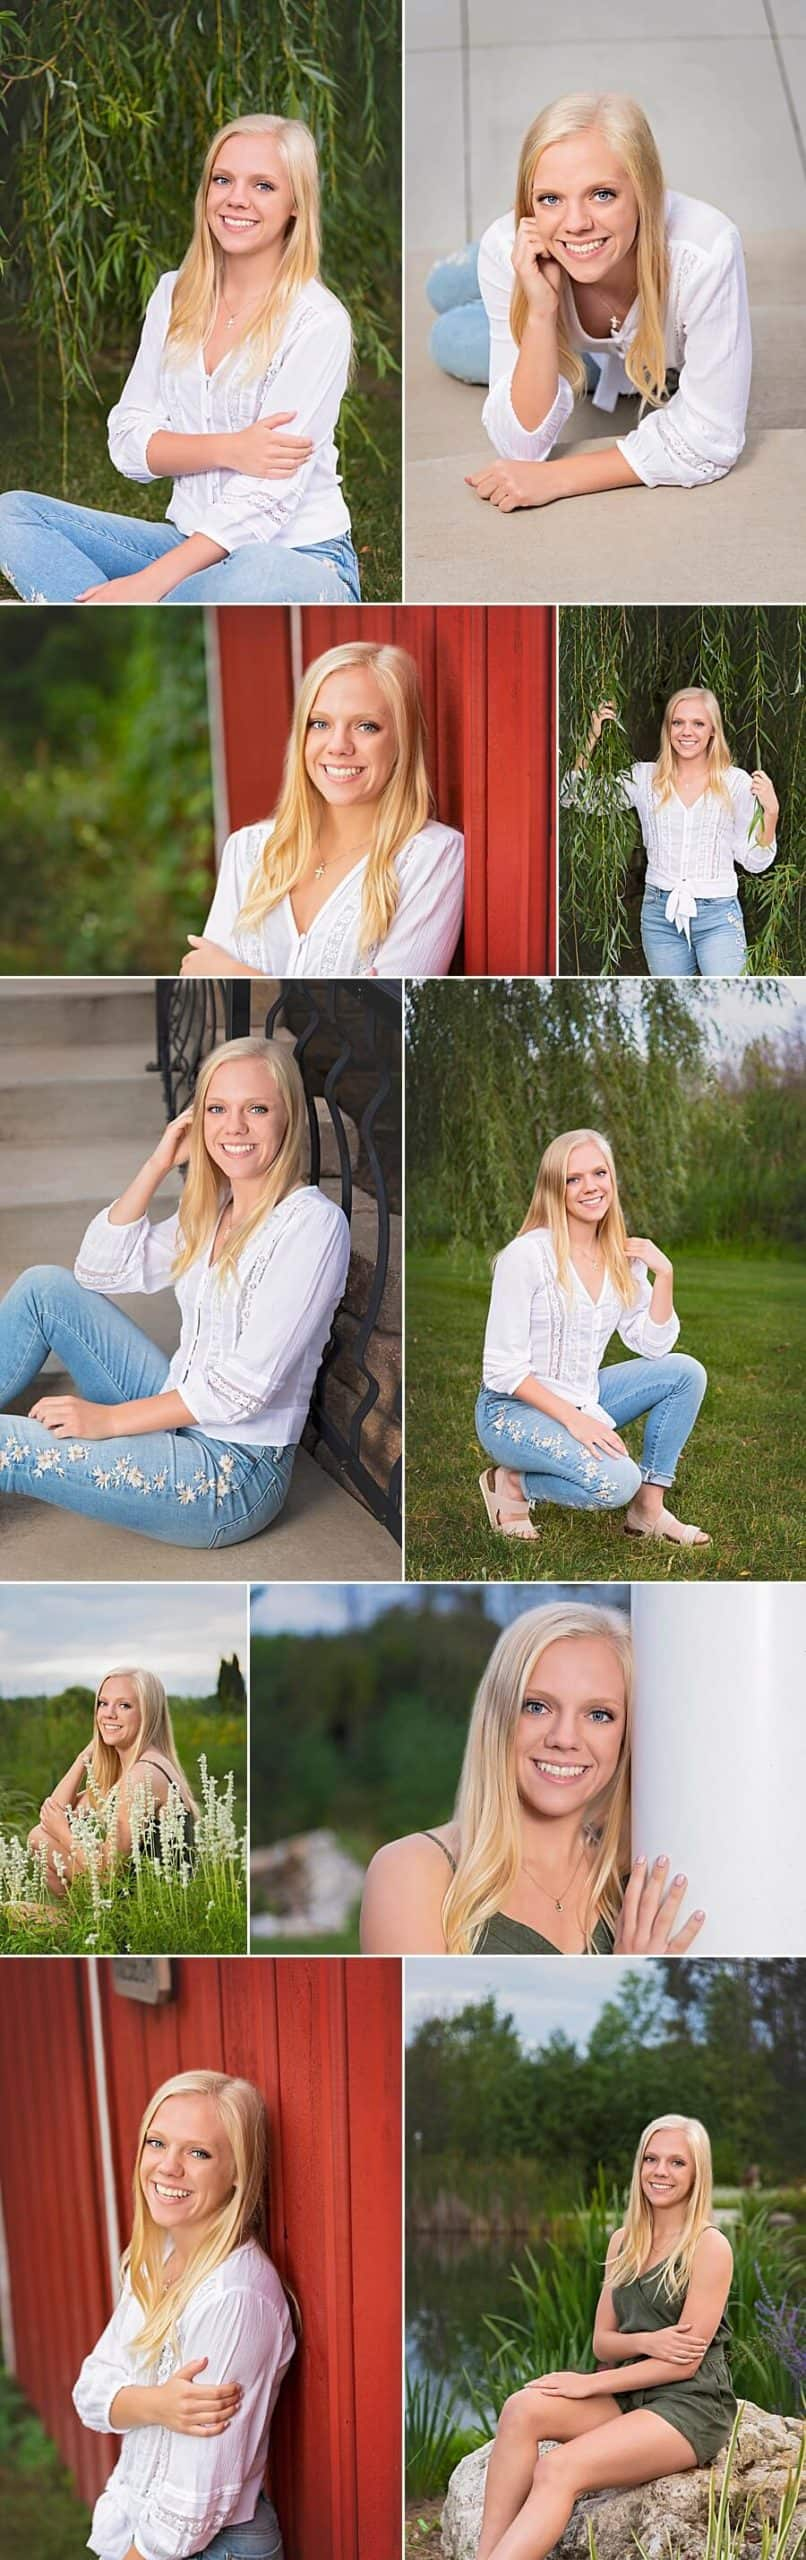 Slinger Senior Pictures at The Florian